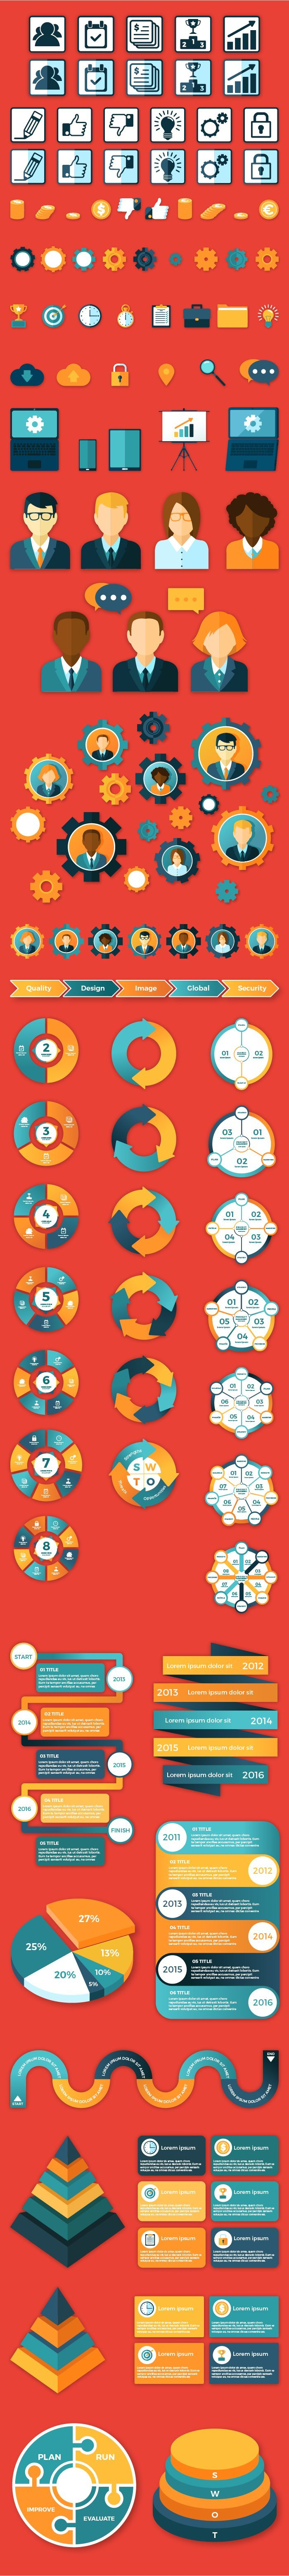 Business Infographic Elements Set 1